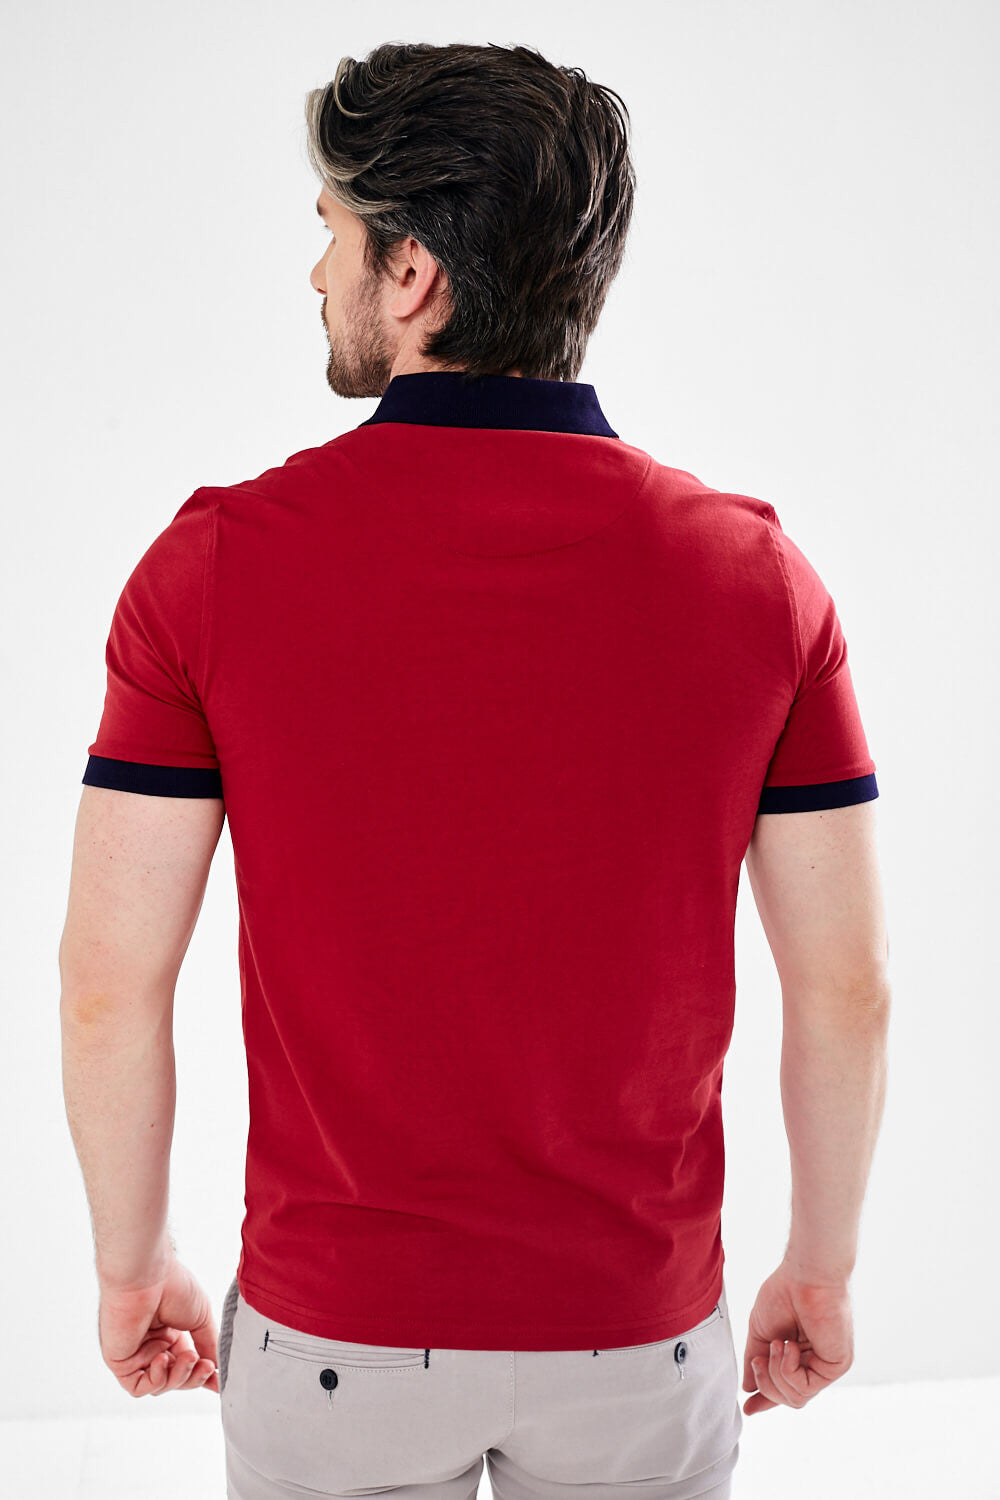 Mineral Princess Polo Shirt - Red - jjdonnelly